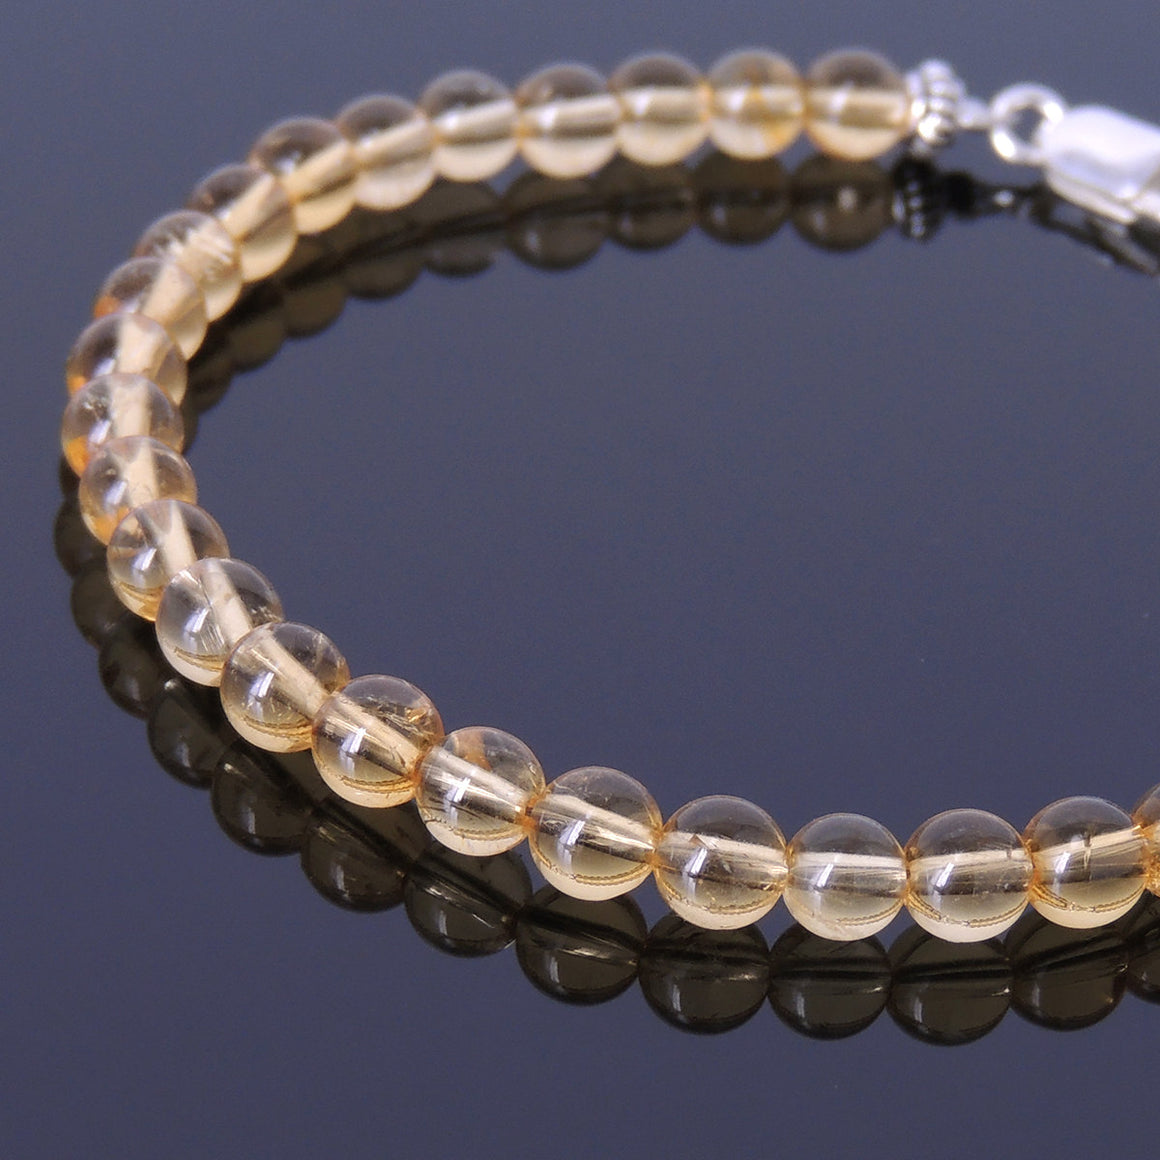 5mm Citrine Quartz Healing Gemstone Bracelet with S925 Sterling Silver Spacer Beads & Clasp - Handmade by Gem & Silver BR381